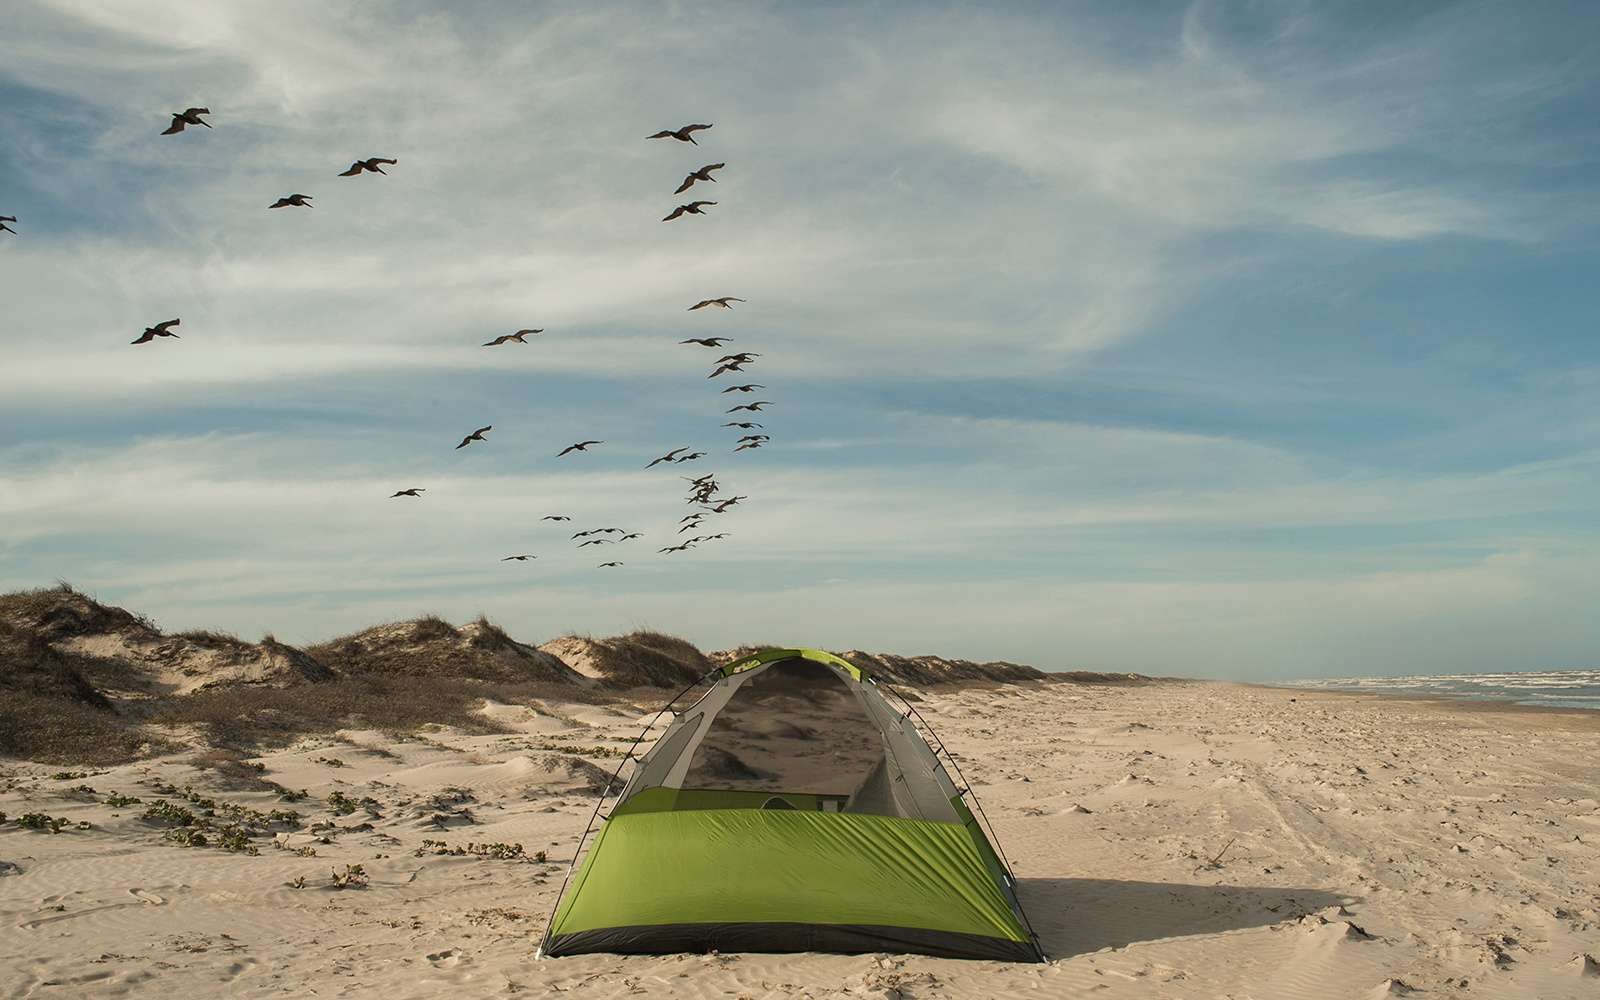 Malaquite Campground, Padre Island National Seashore, Texas